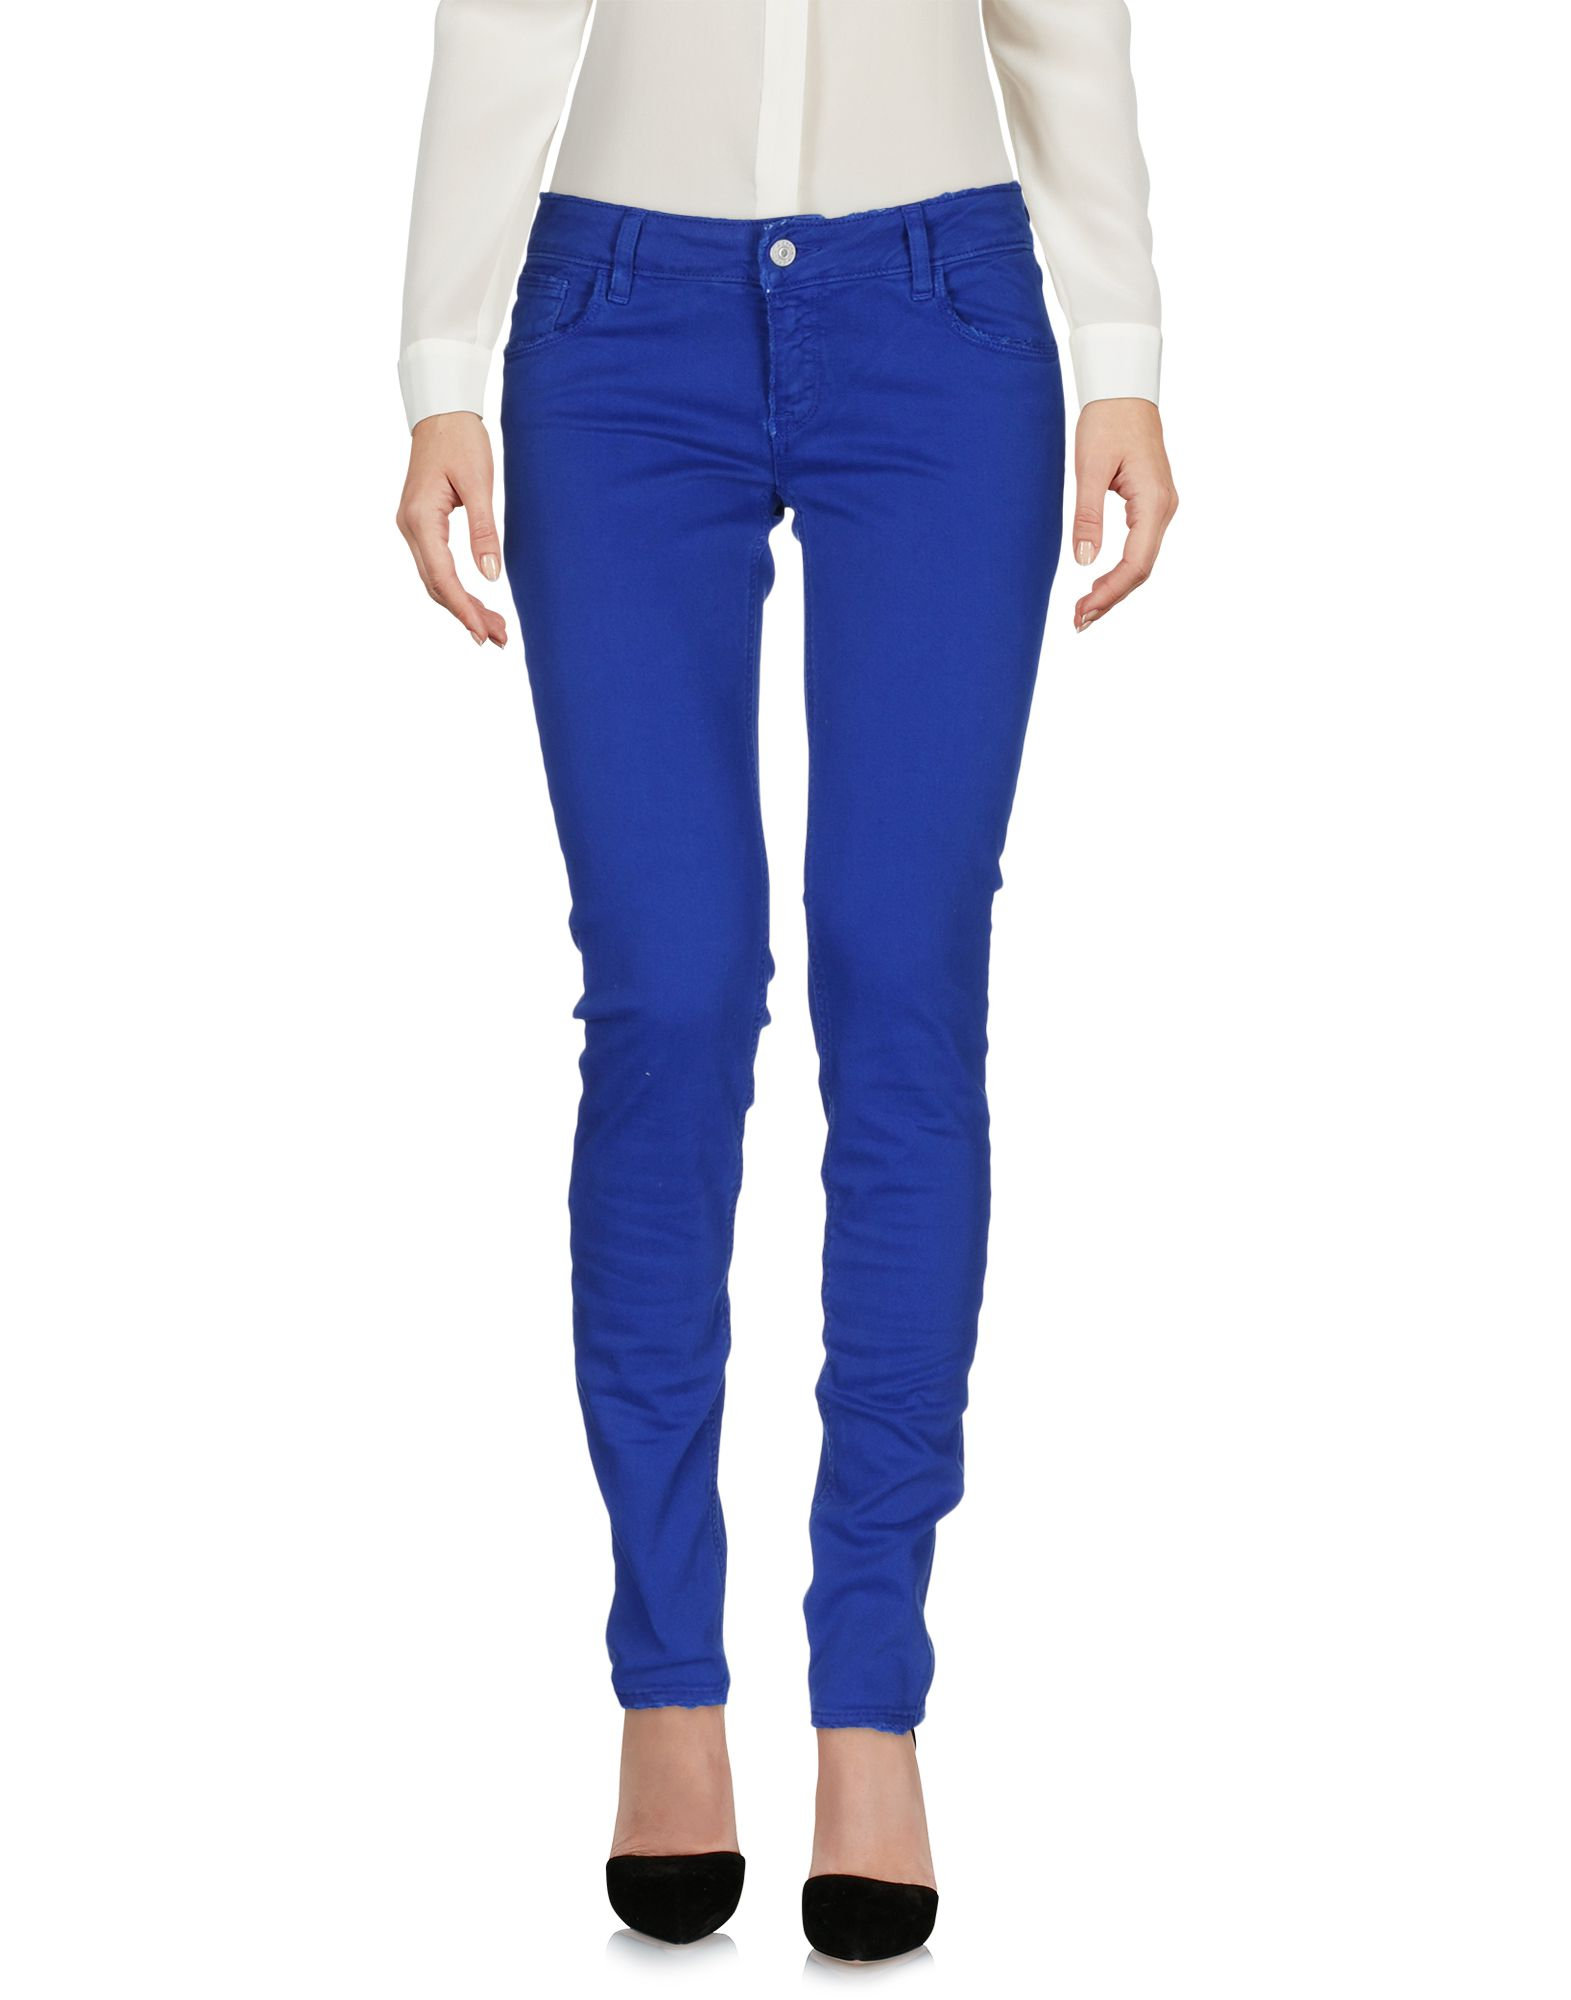 CYCLE Casual Pants in Blue